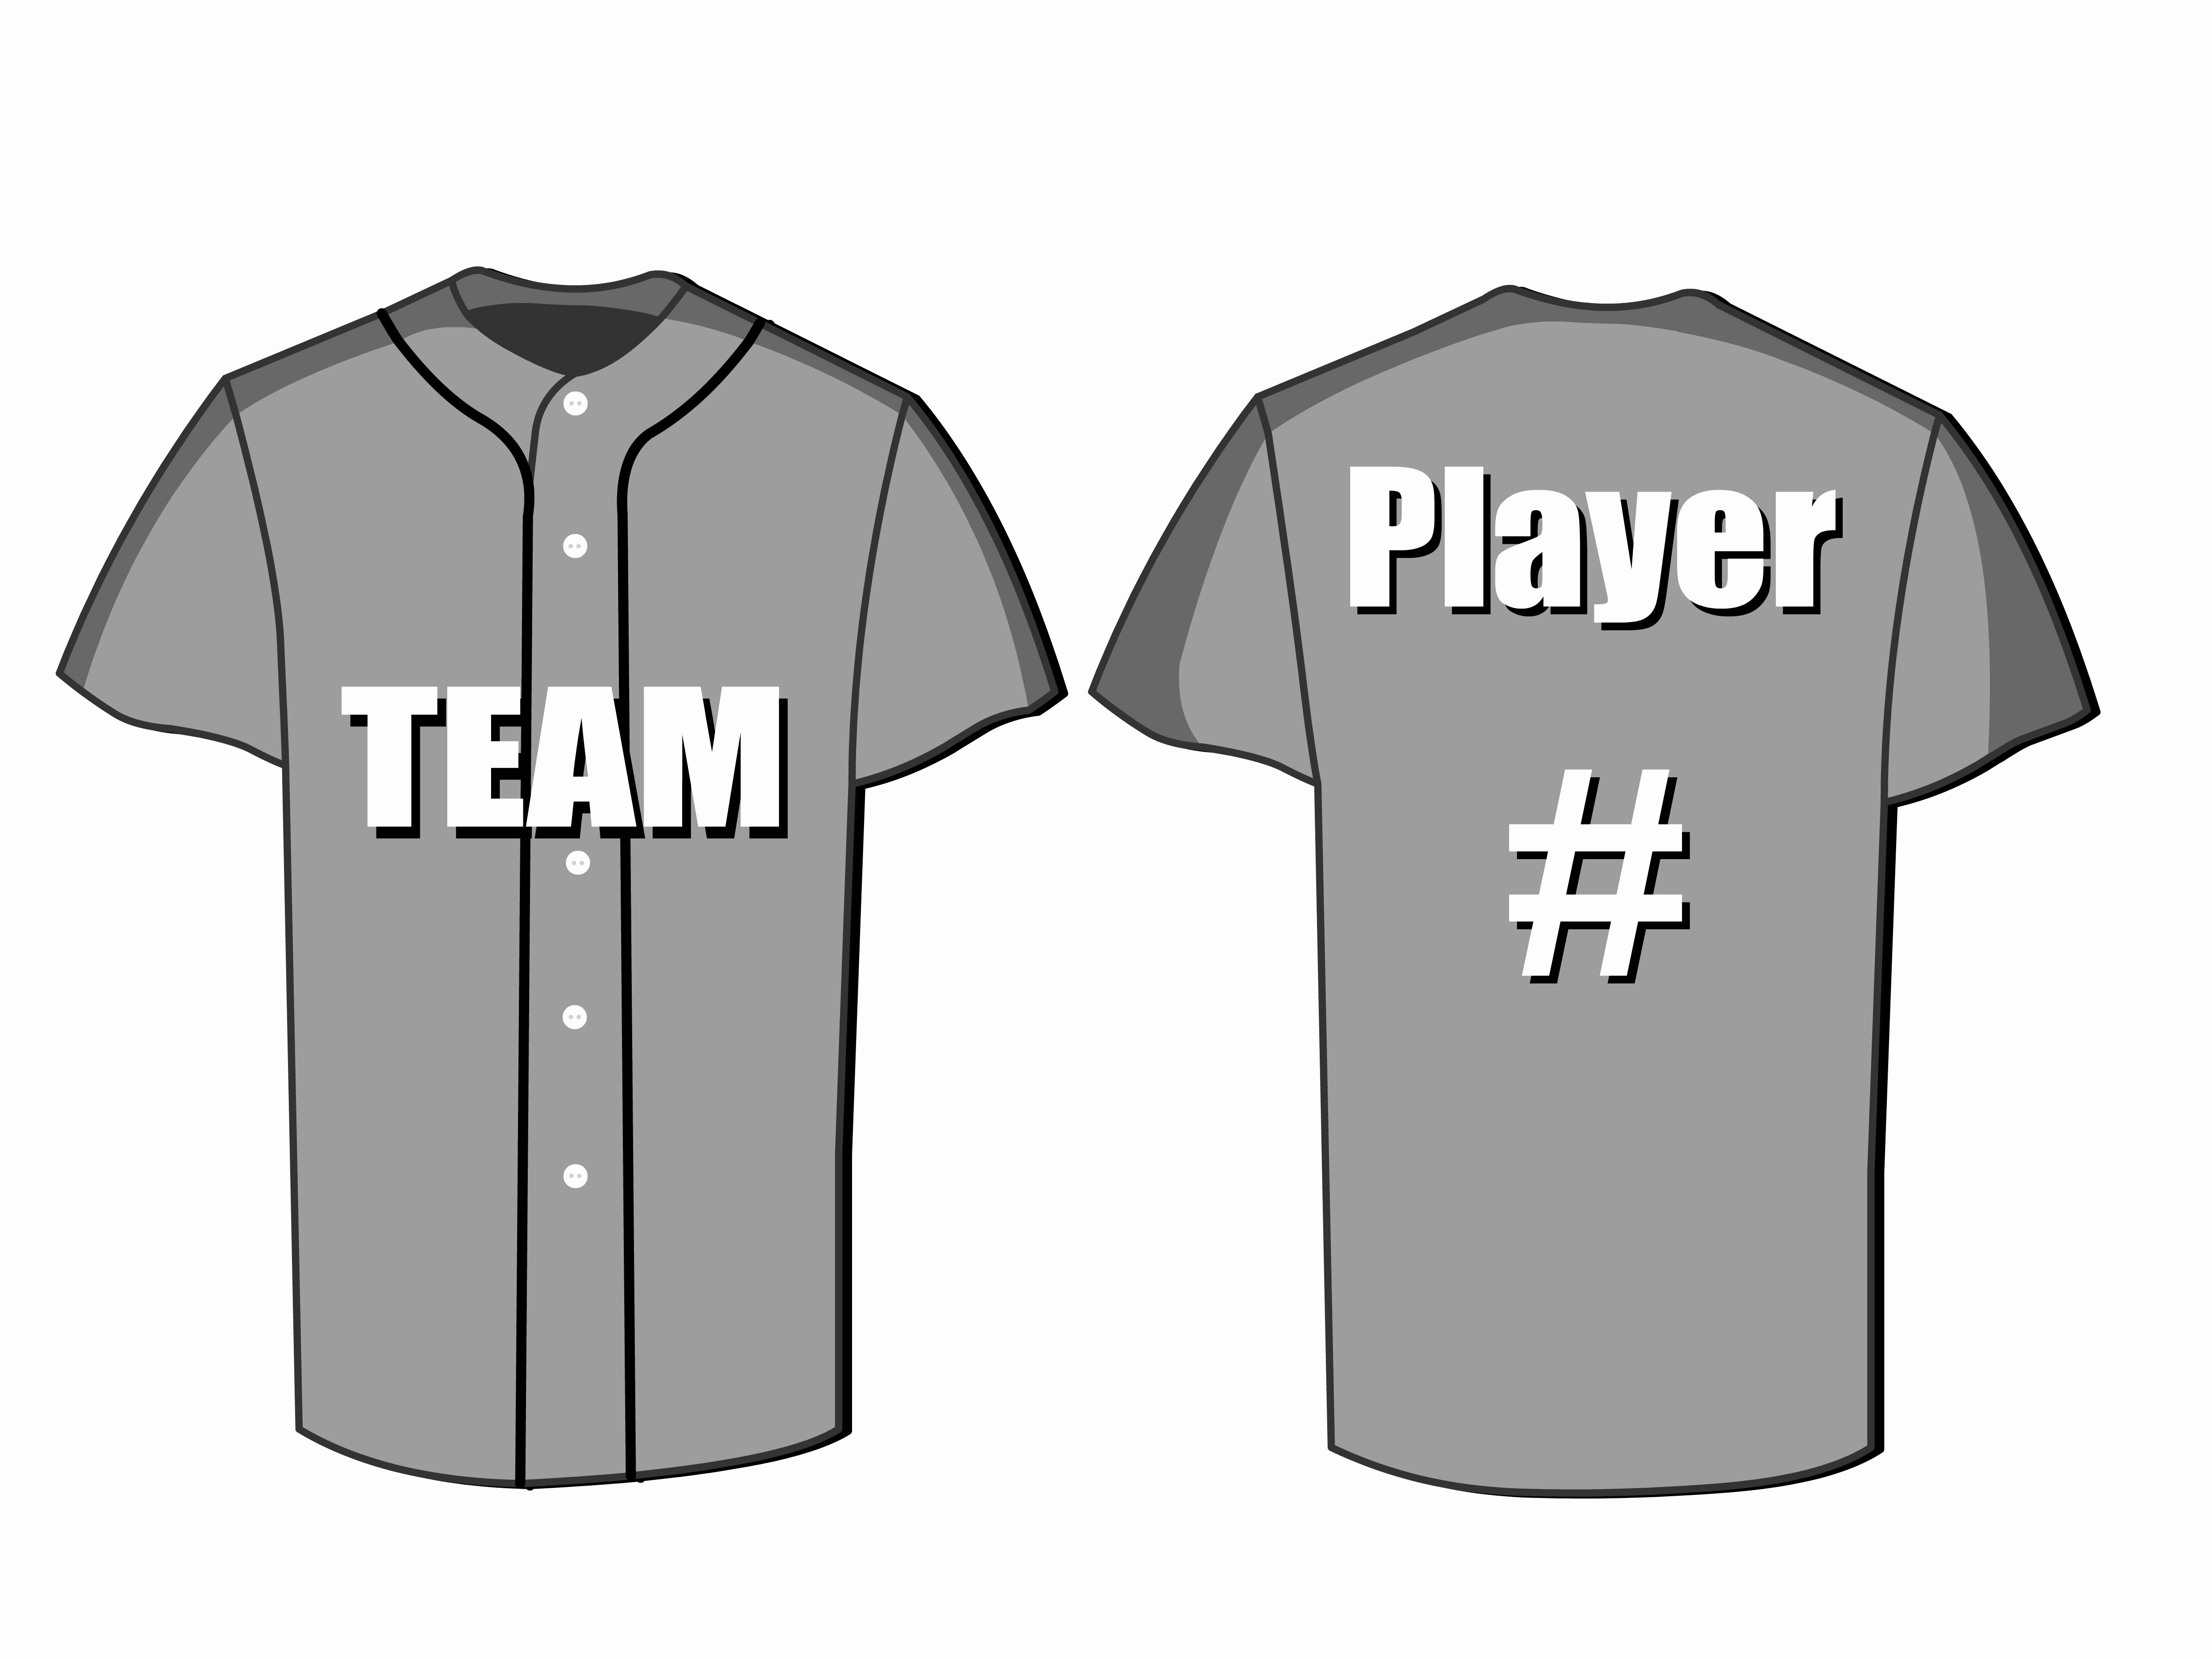 Baseball Shirt Designs Template Elegant My Game Art Designs – Page 2 – Creating for Life